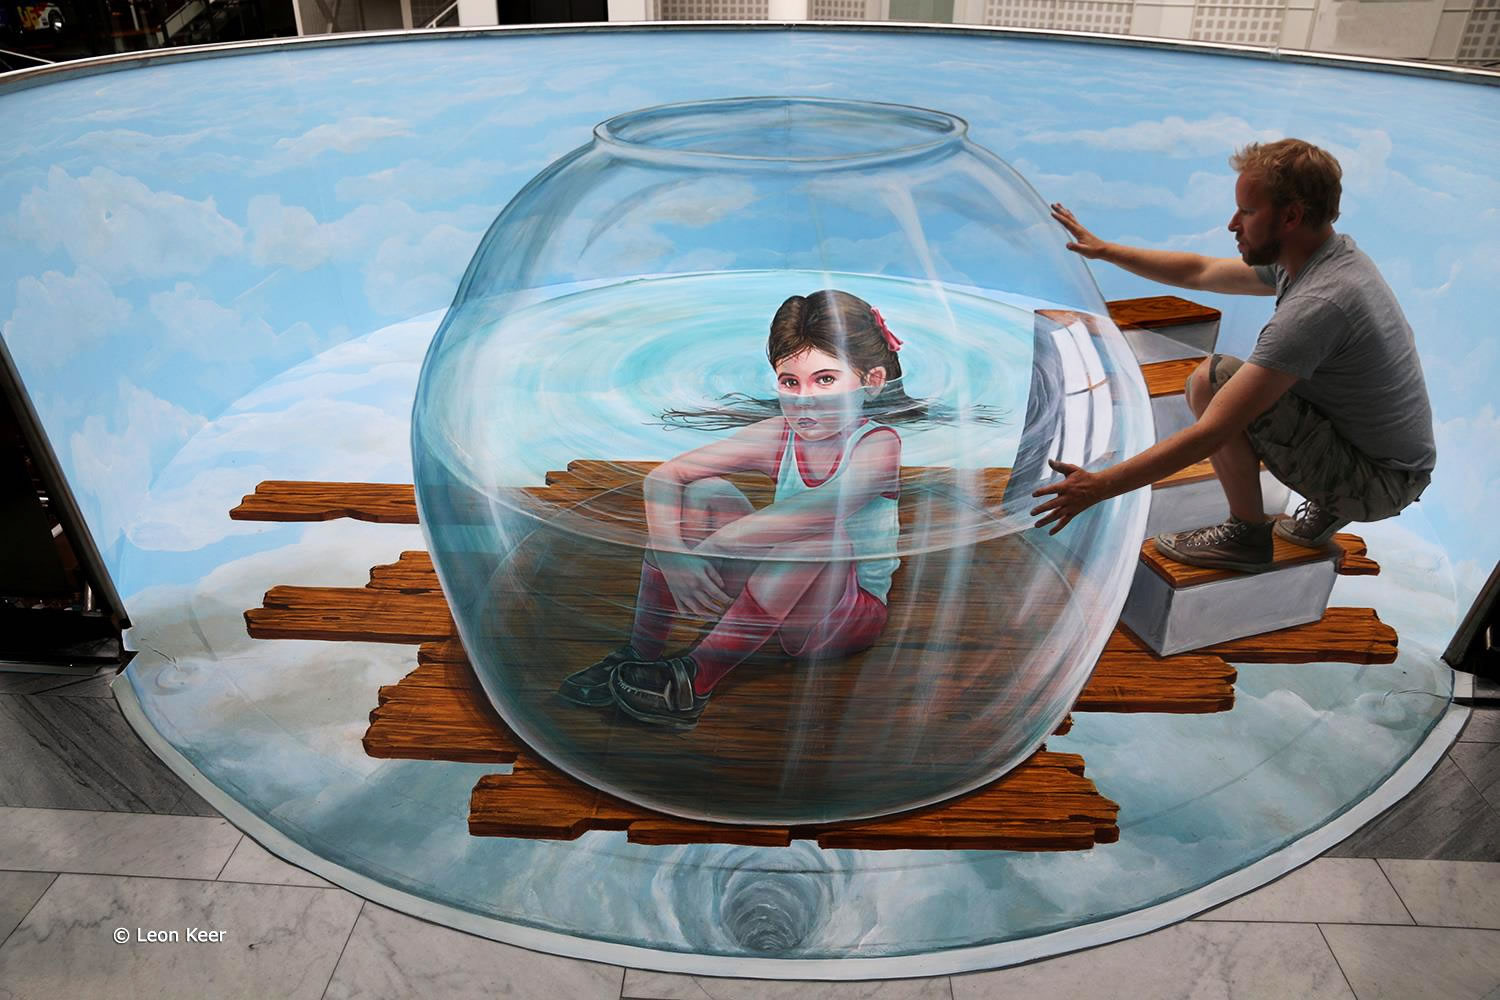 girl in bowl, anamorphic 3d art by leon keer